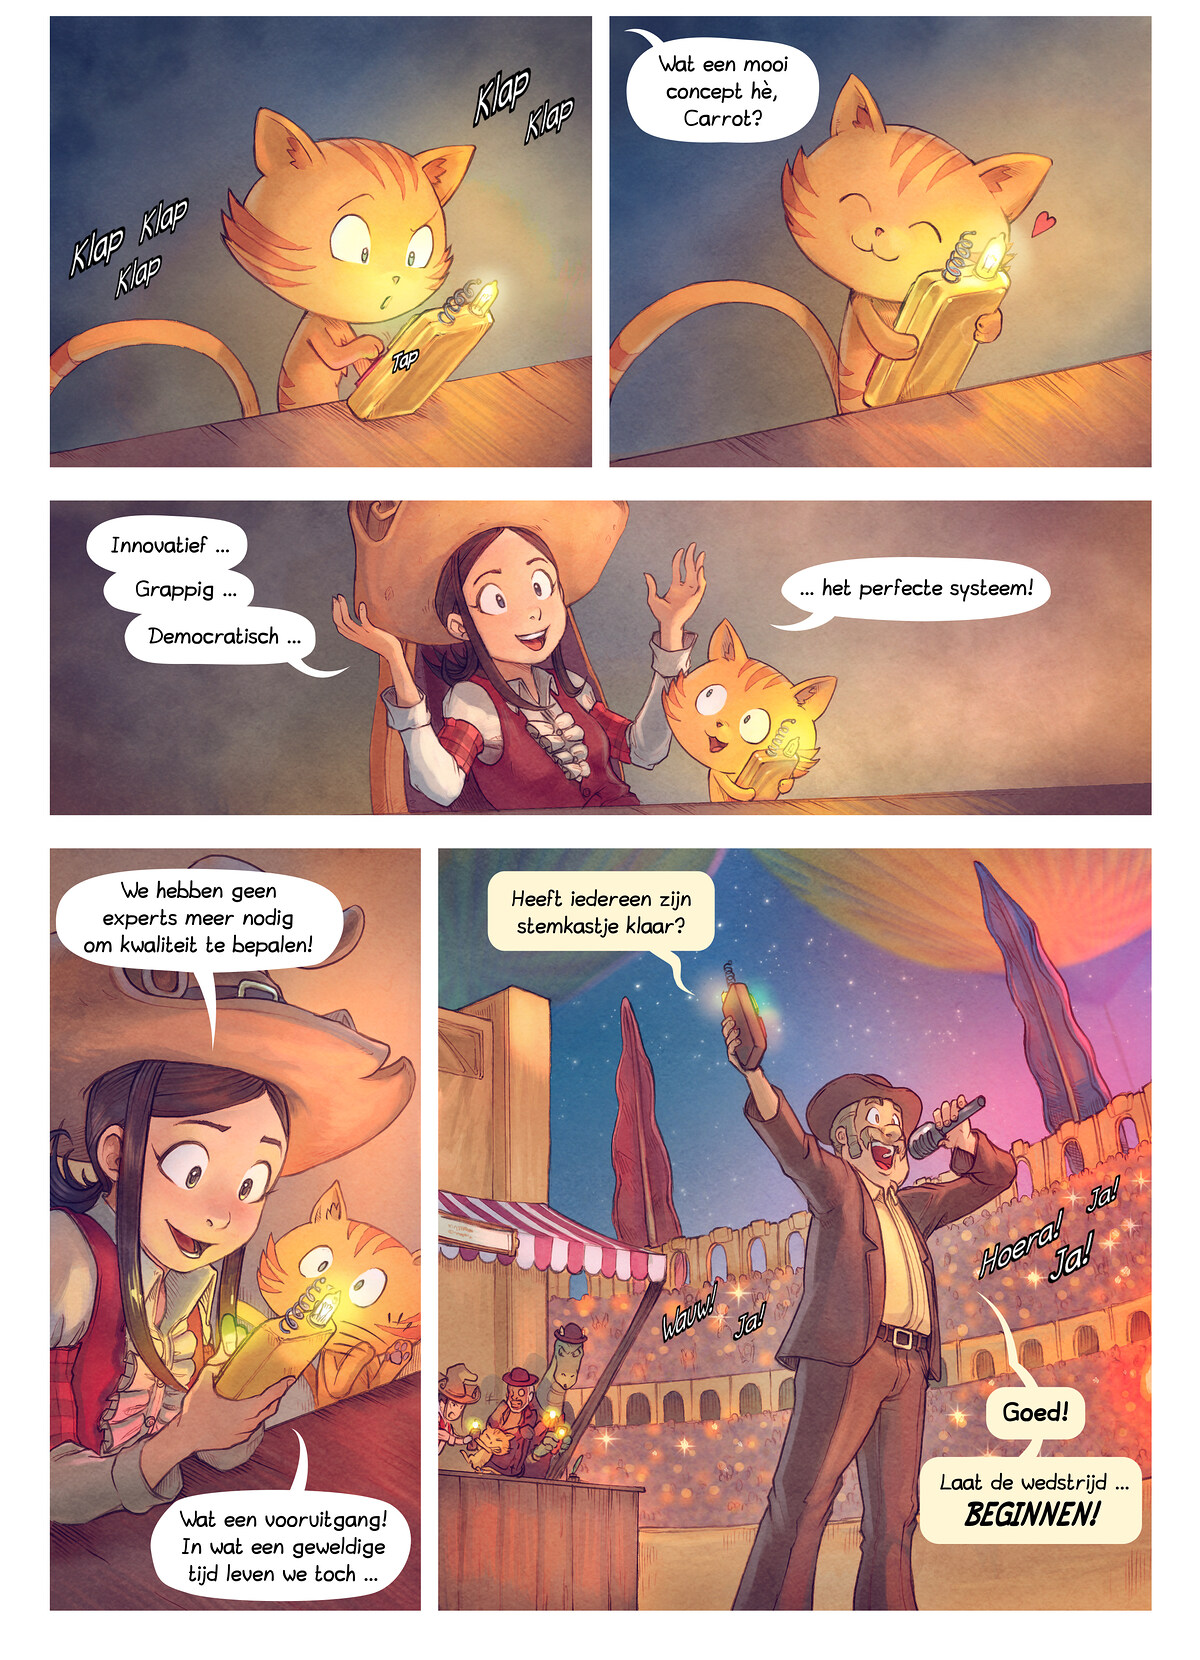 A webcomic page of Pepper&Carrot, aflevering 22 [nl], pagina 4